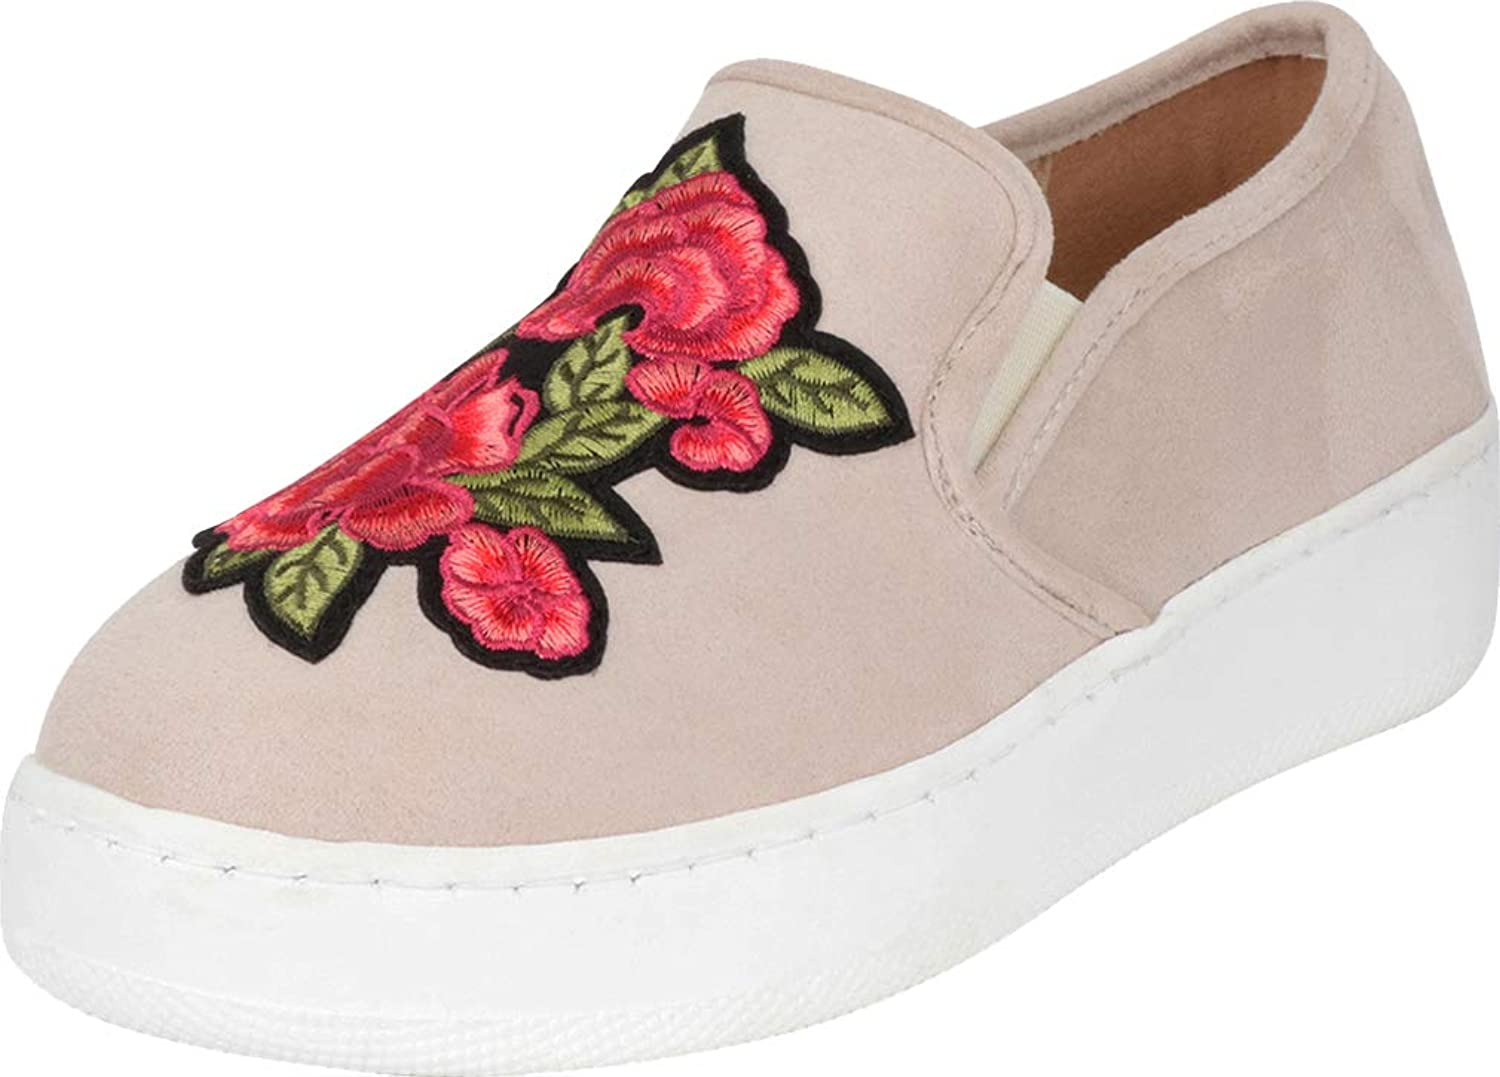 Cambridge Select Women's Floral Embroidered Patch Stretch Slip-On Flatform Fashion Sneaker